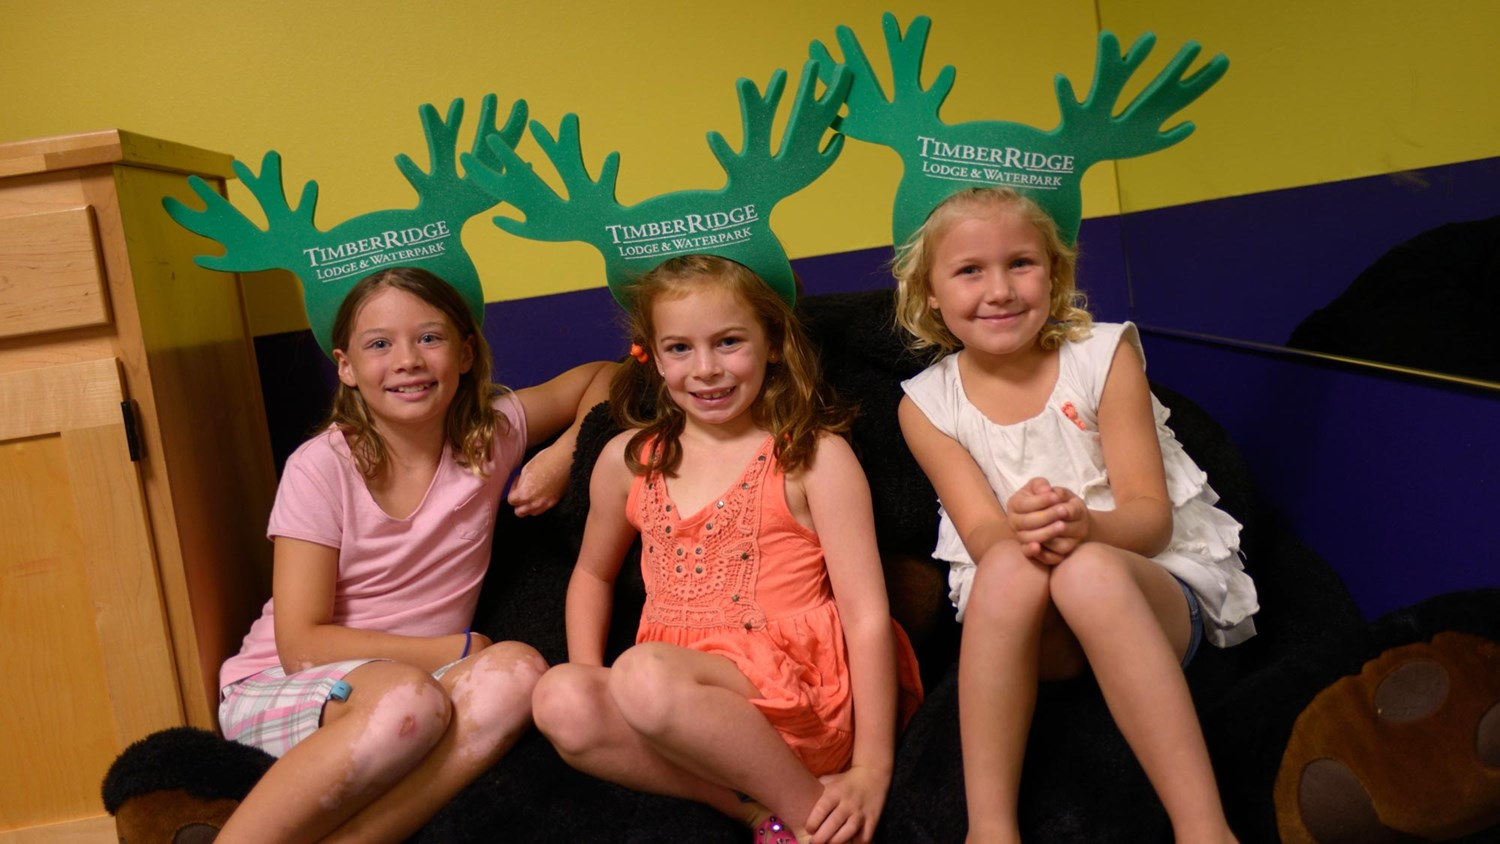 Little girls posing with their moose antler crowns